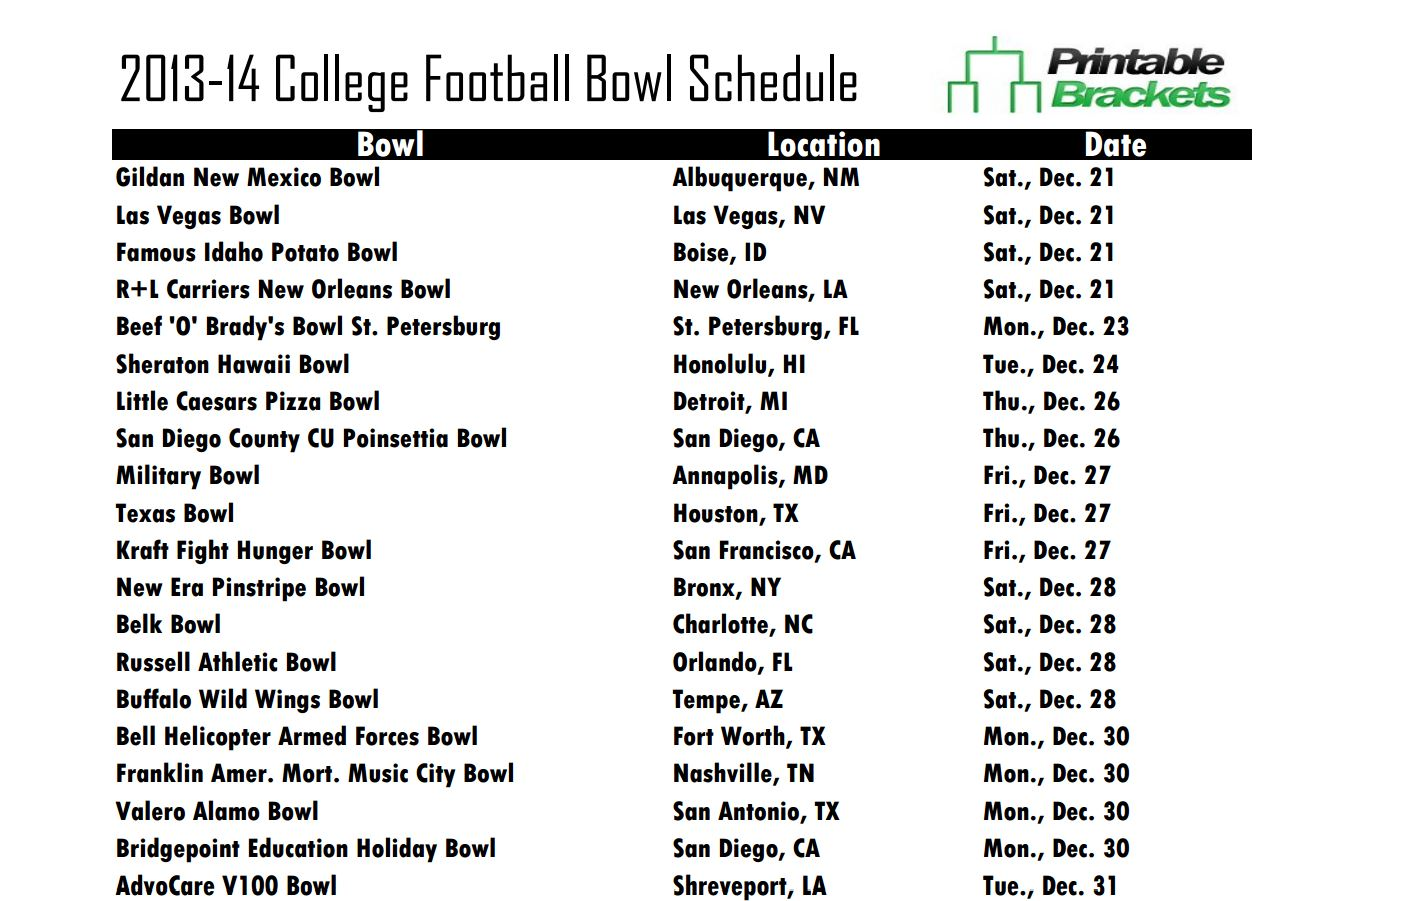 College Football Bowl Schedule 2015-2016 Printable